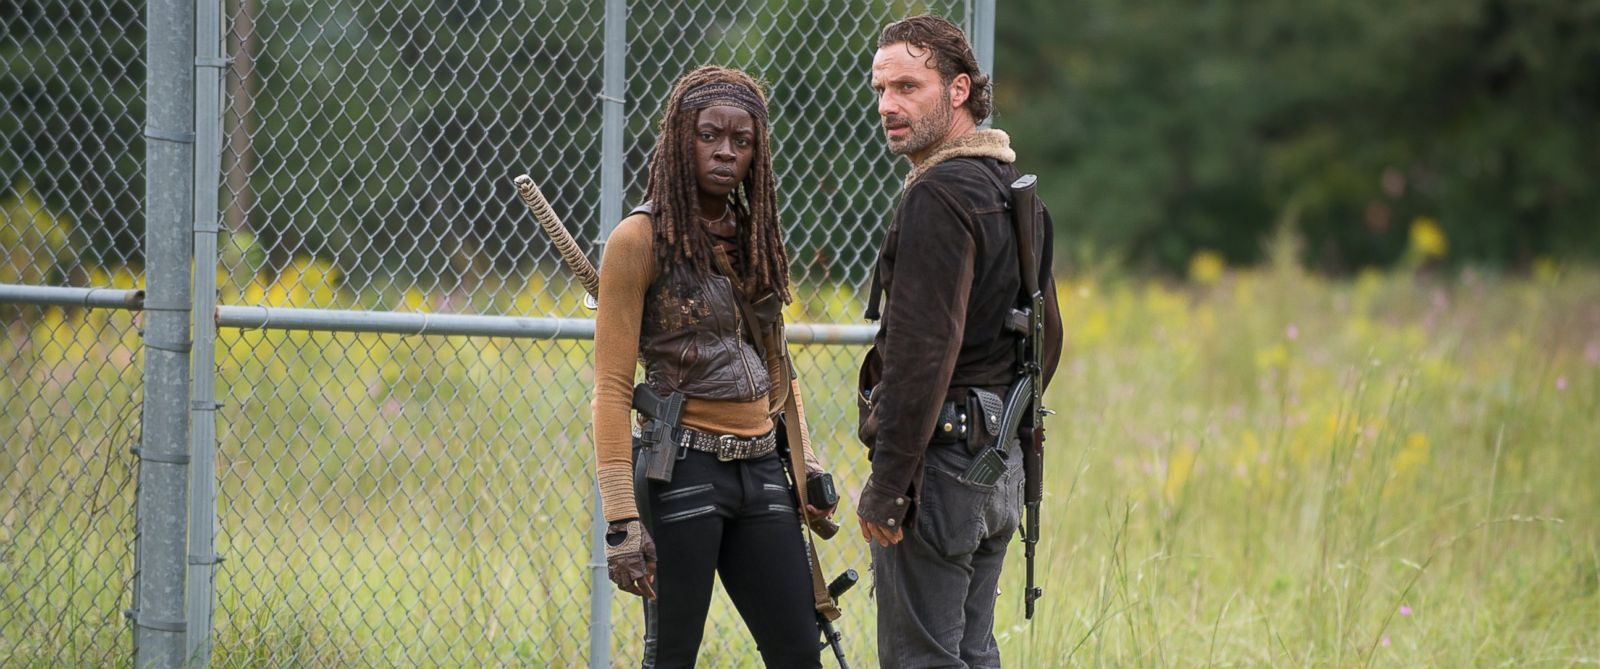 PHOTO: Danai Gurira as Michonne and Andrew Lincoln as Rick Grimes on The Walking Dead, Season 6, Episode 12.